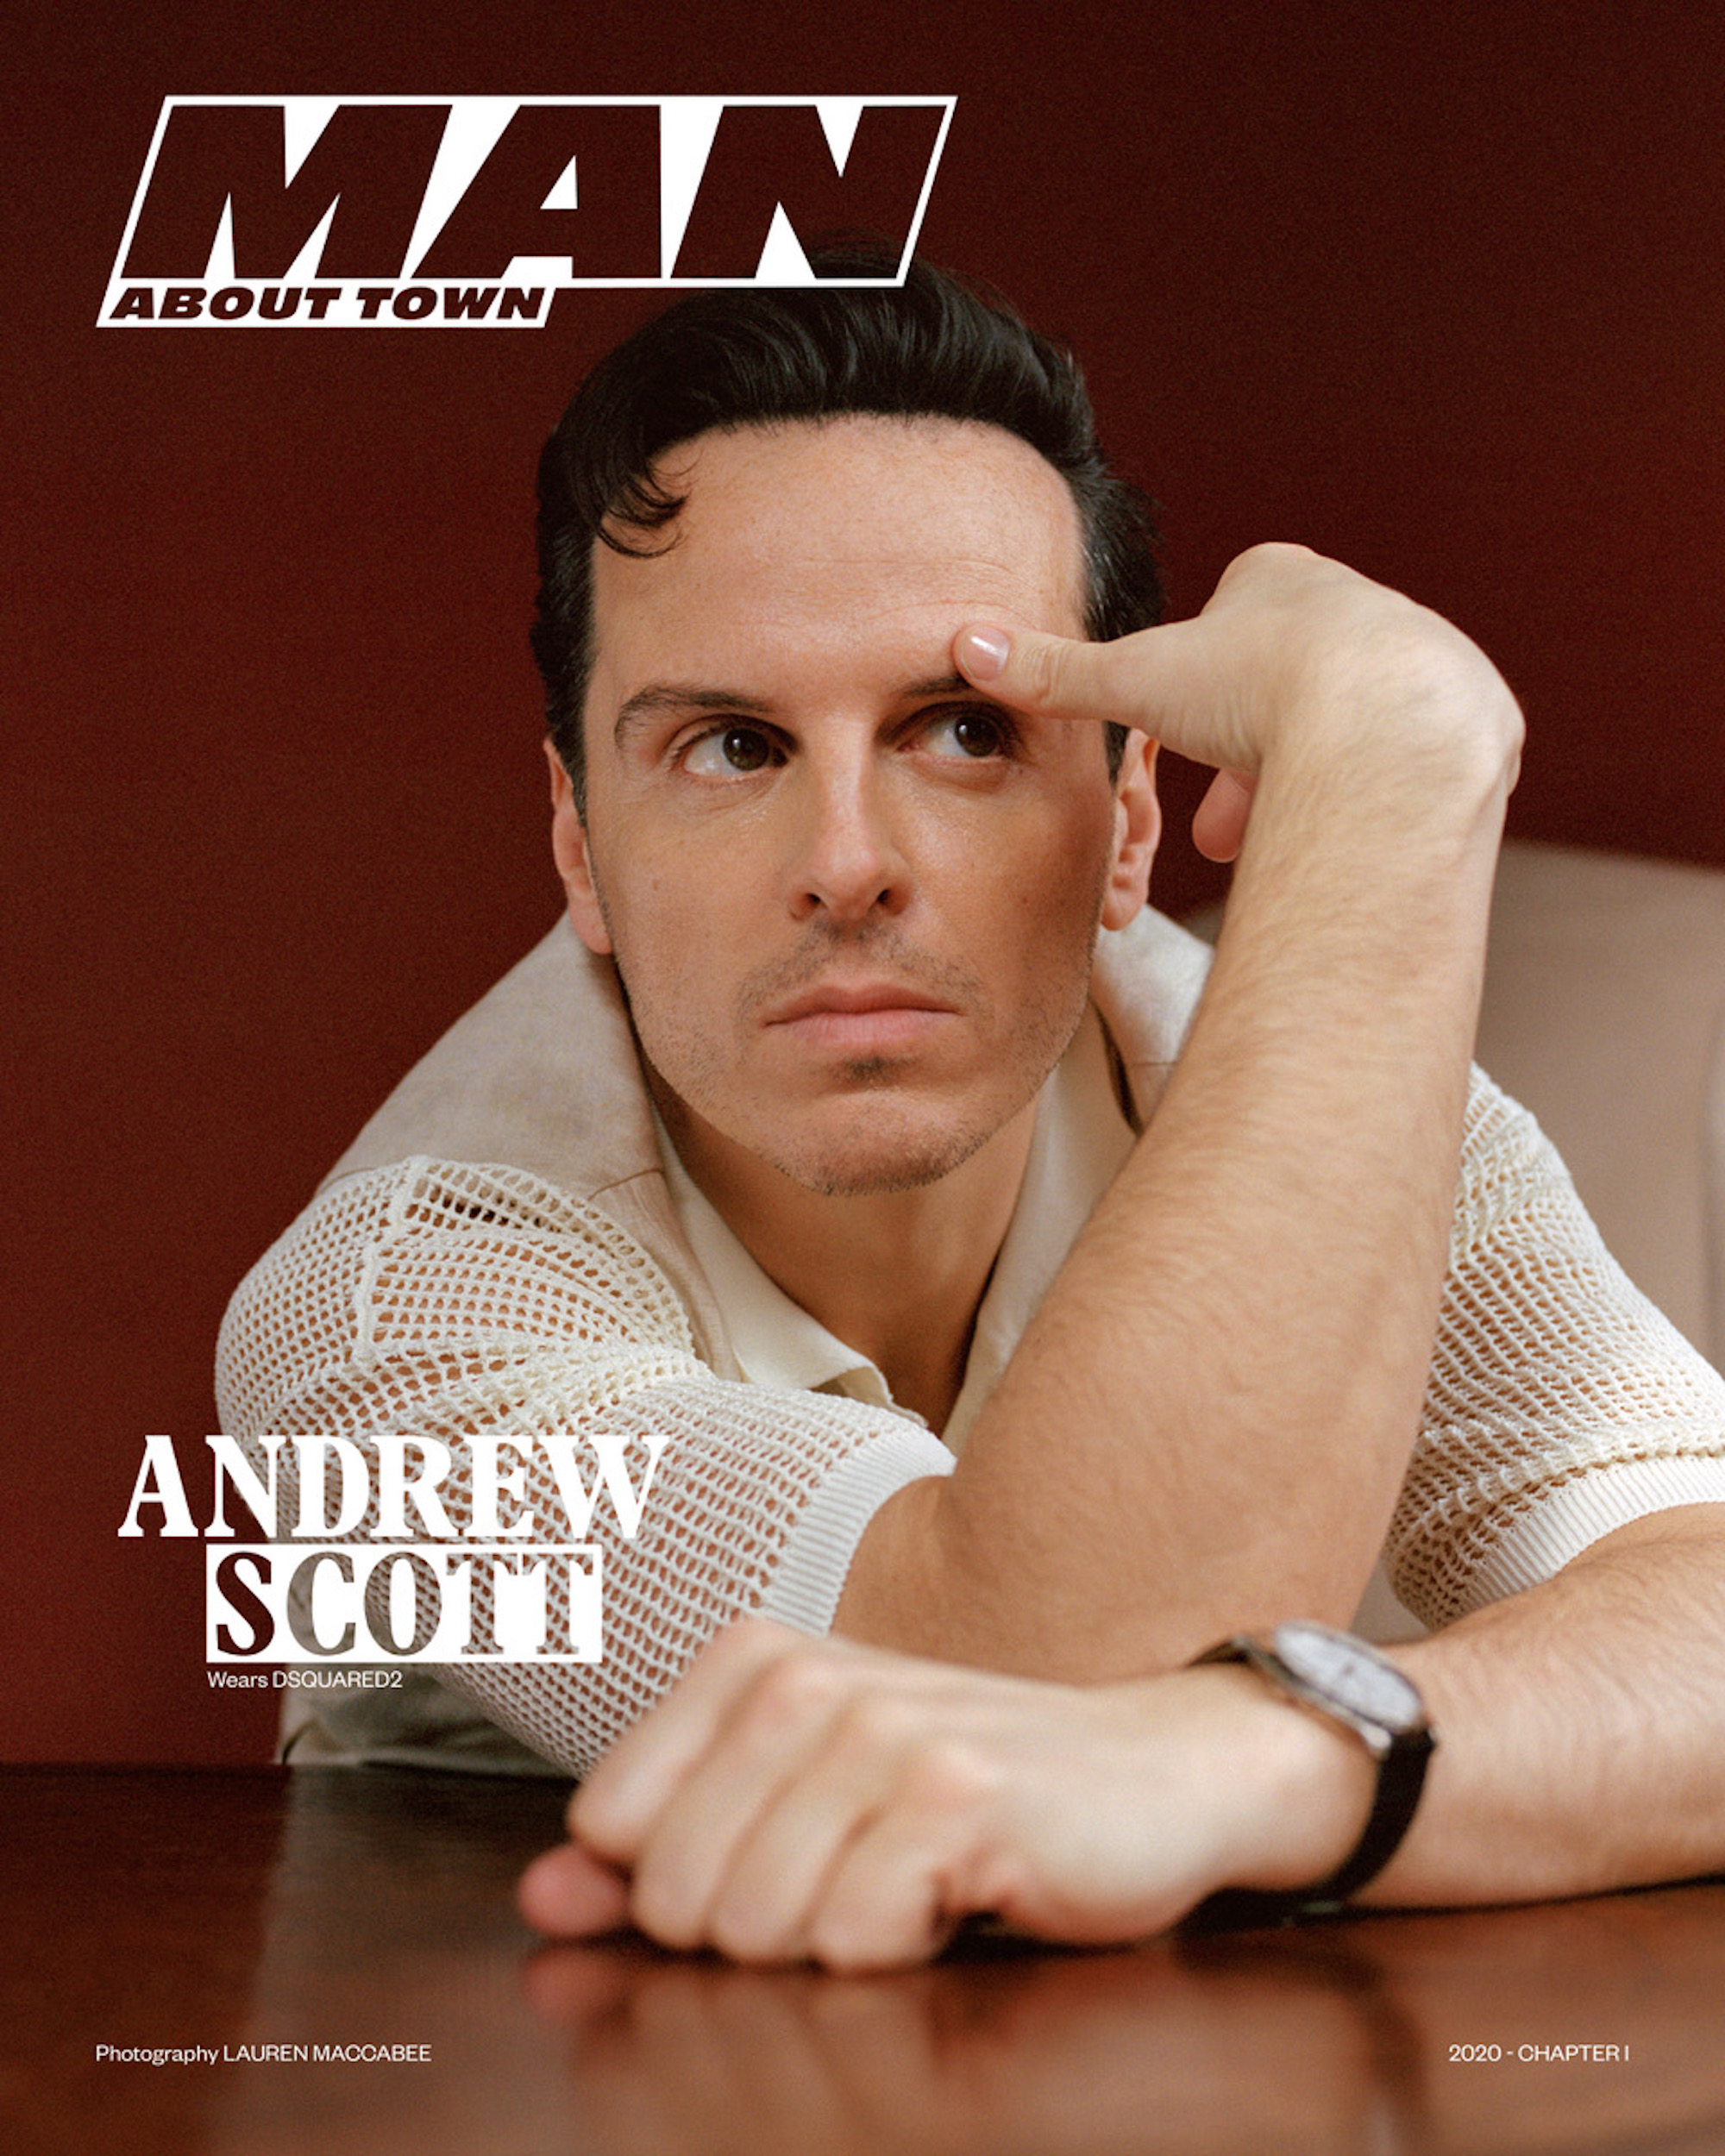 Andrew Scott covers Man About Town: 2020, Chapter I